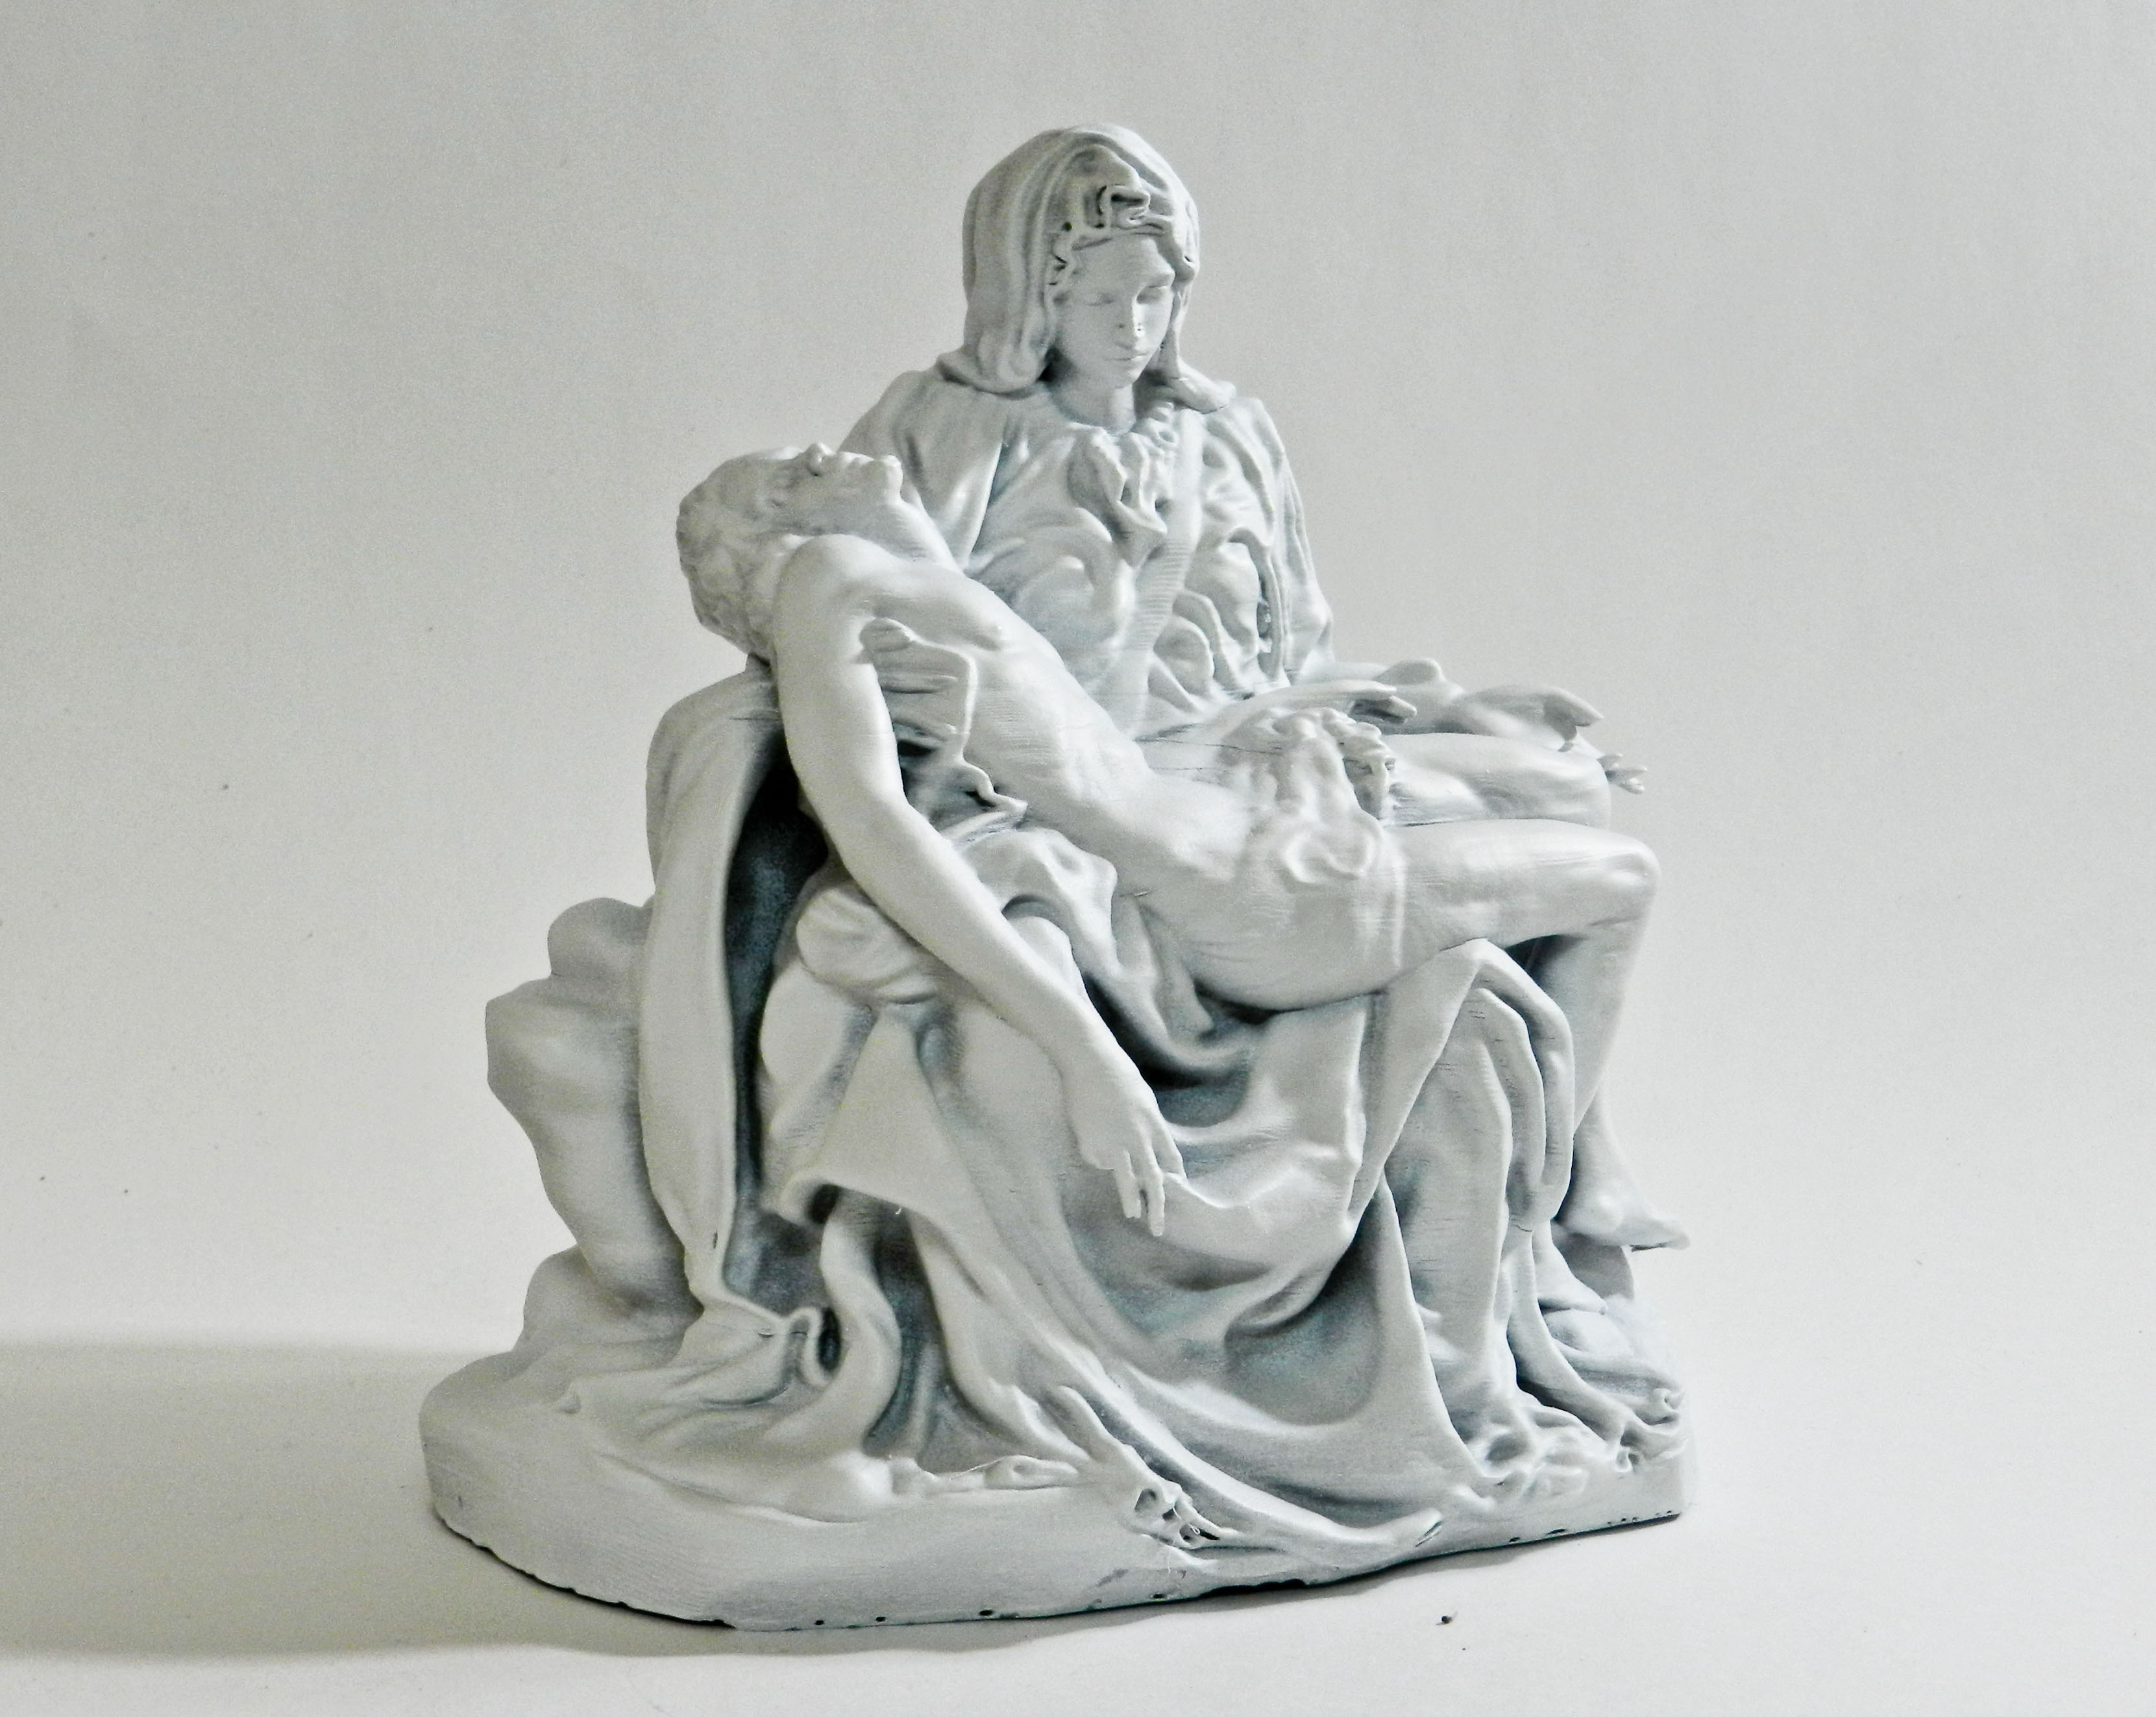 Picture of print of Pieta in St. Peter's Basilica, Vatican This print has been uploaded by Martin PMP